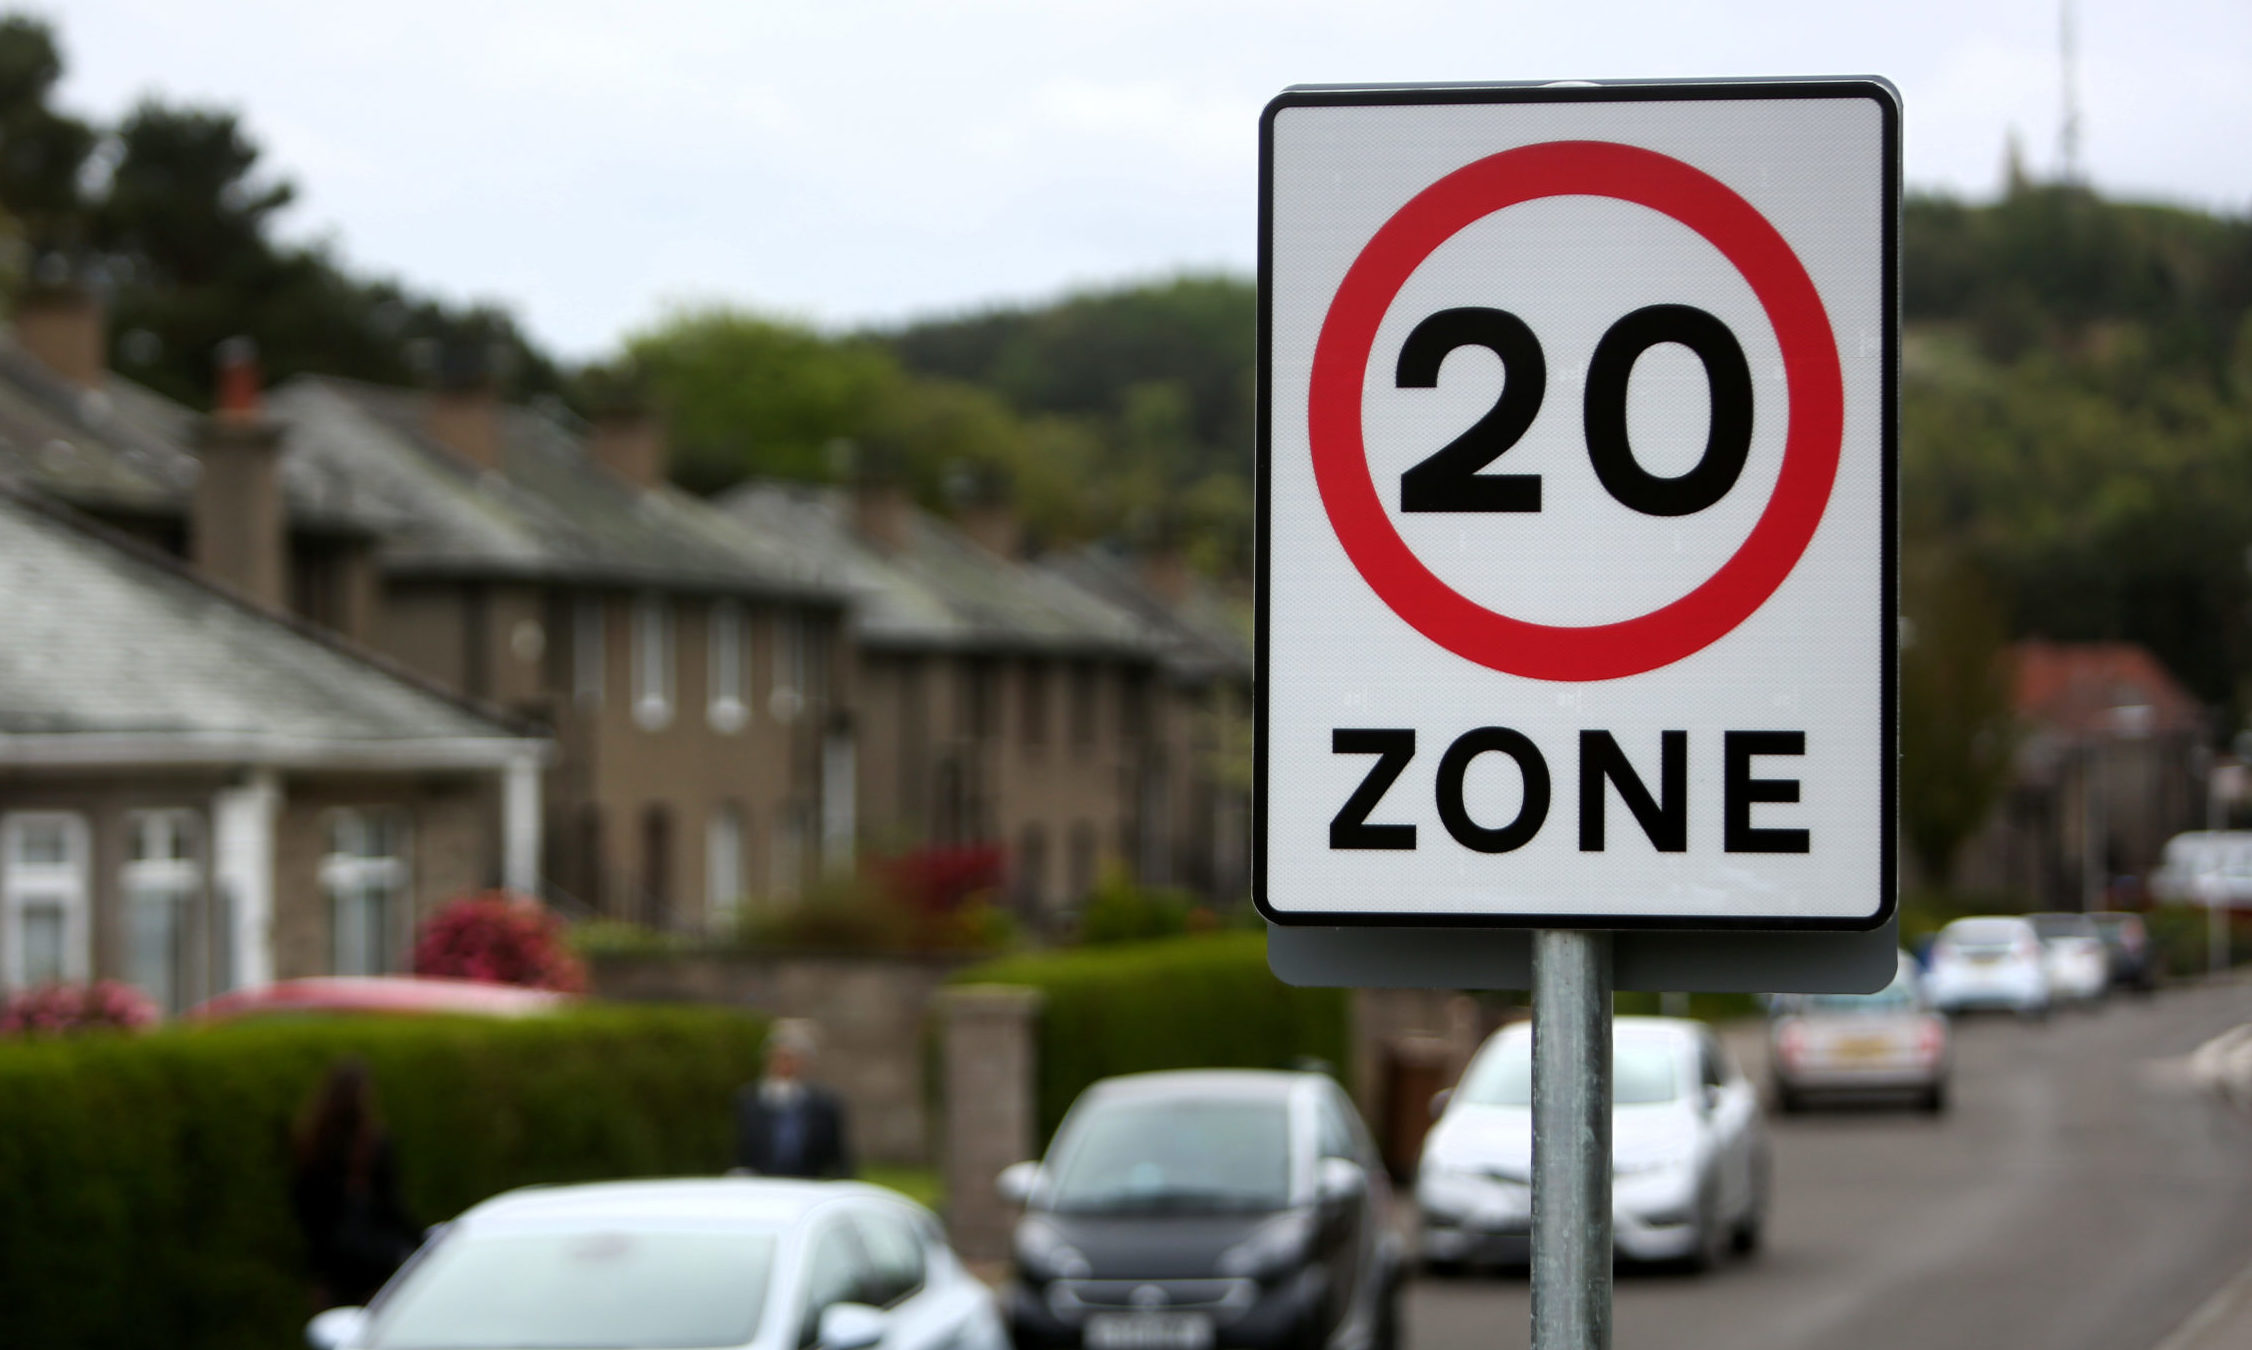 The 20mph speed limit makes sense in our residential areas.